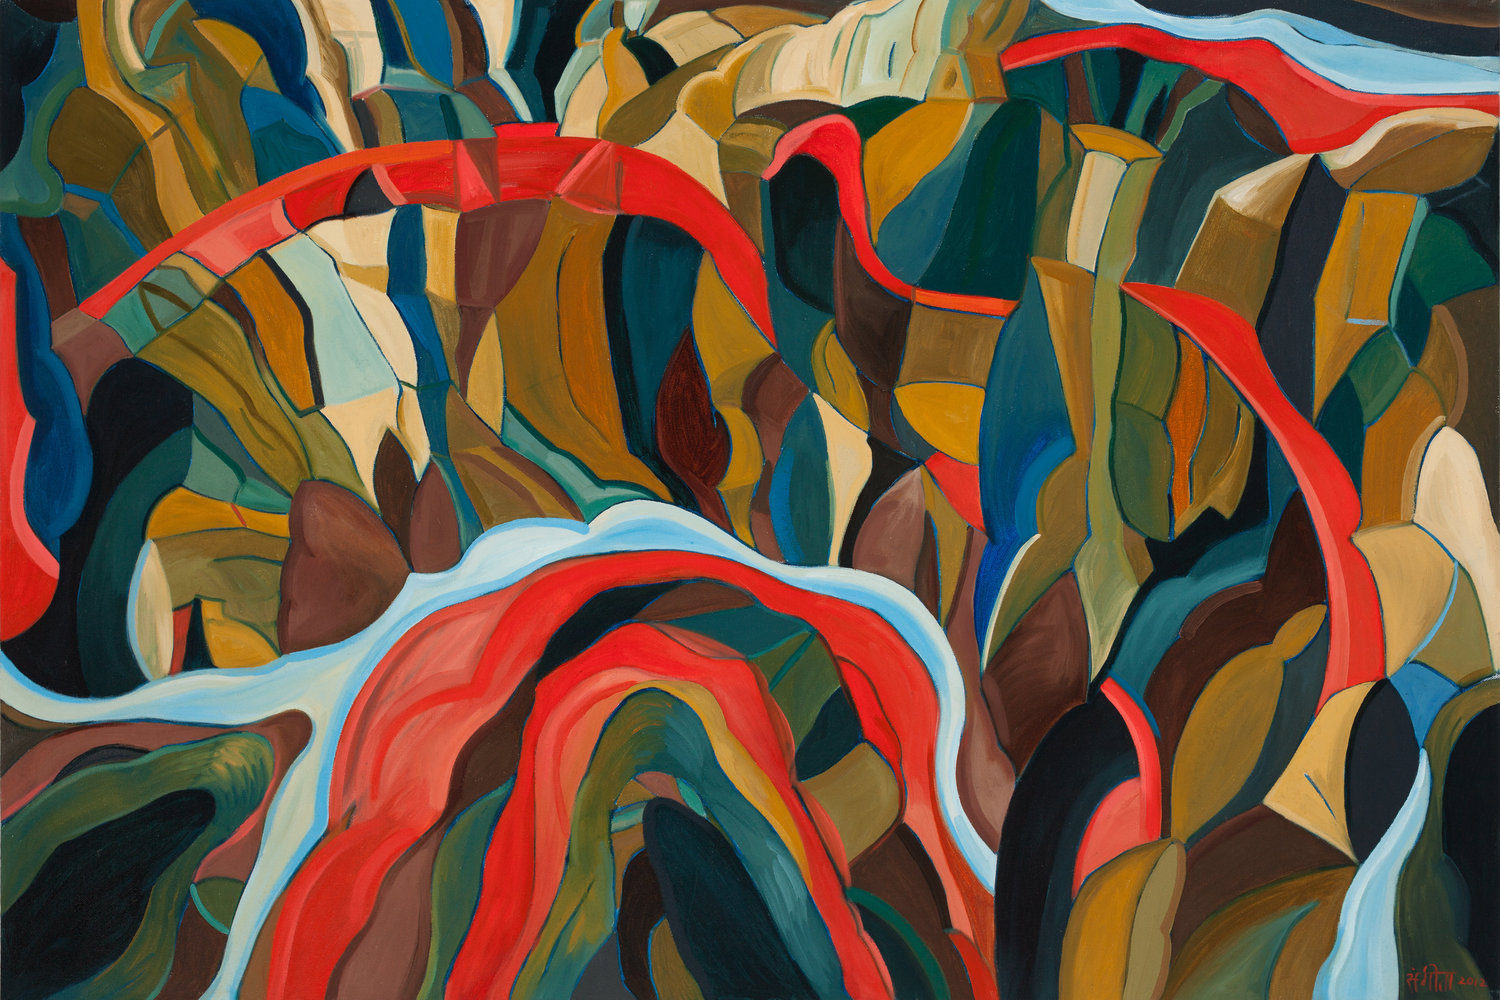 Sangeeta_Reddy_Red_Canyon__River_Sky_2012_oil_on_canvas_28x43in.jpg